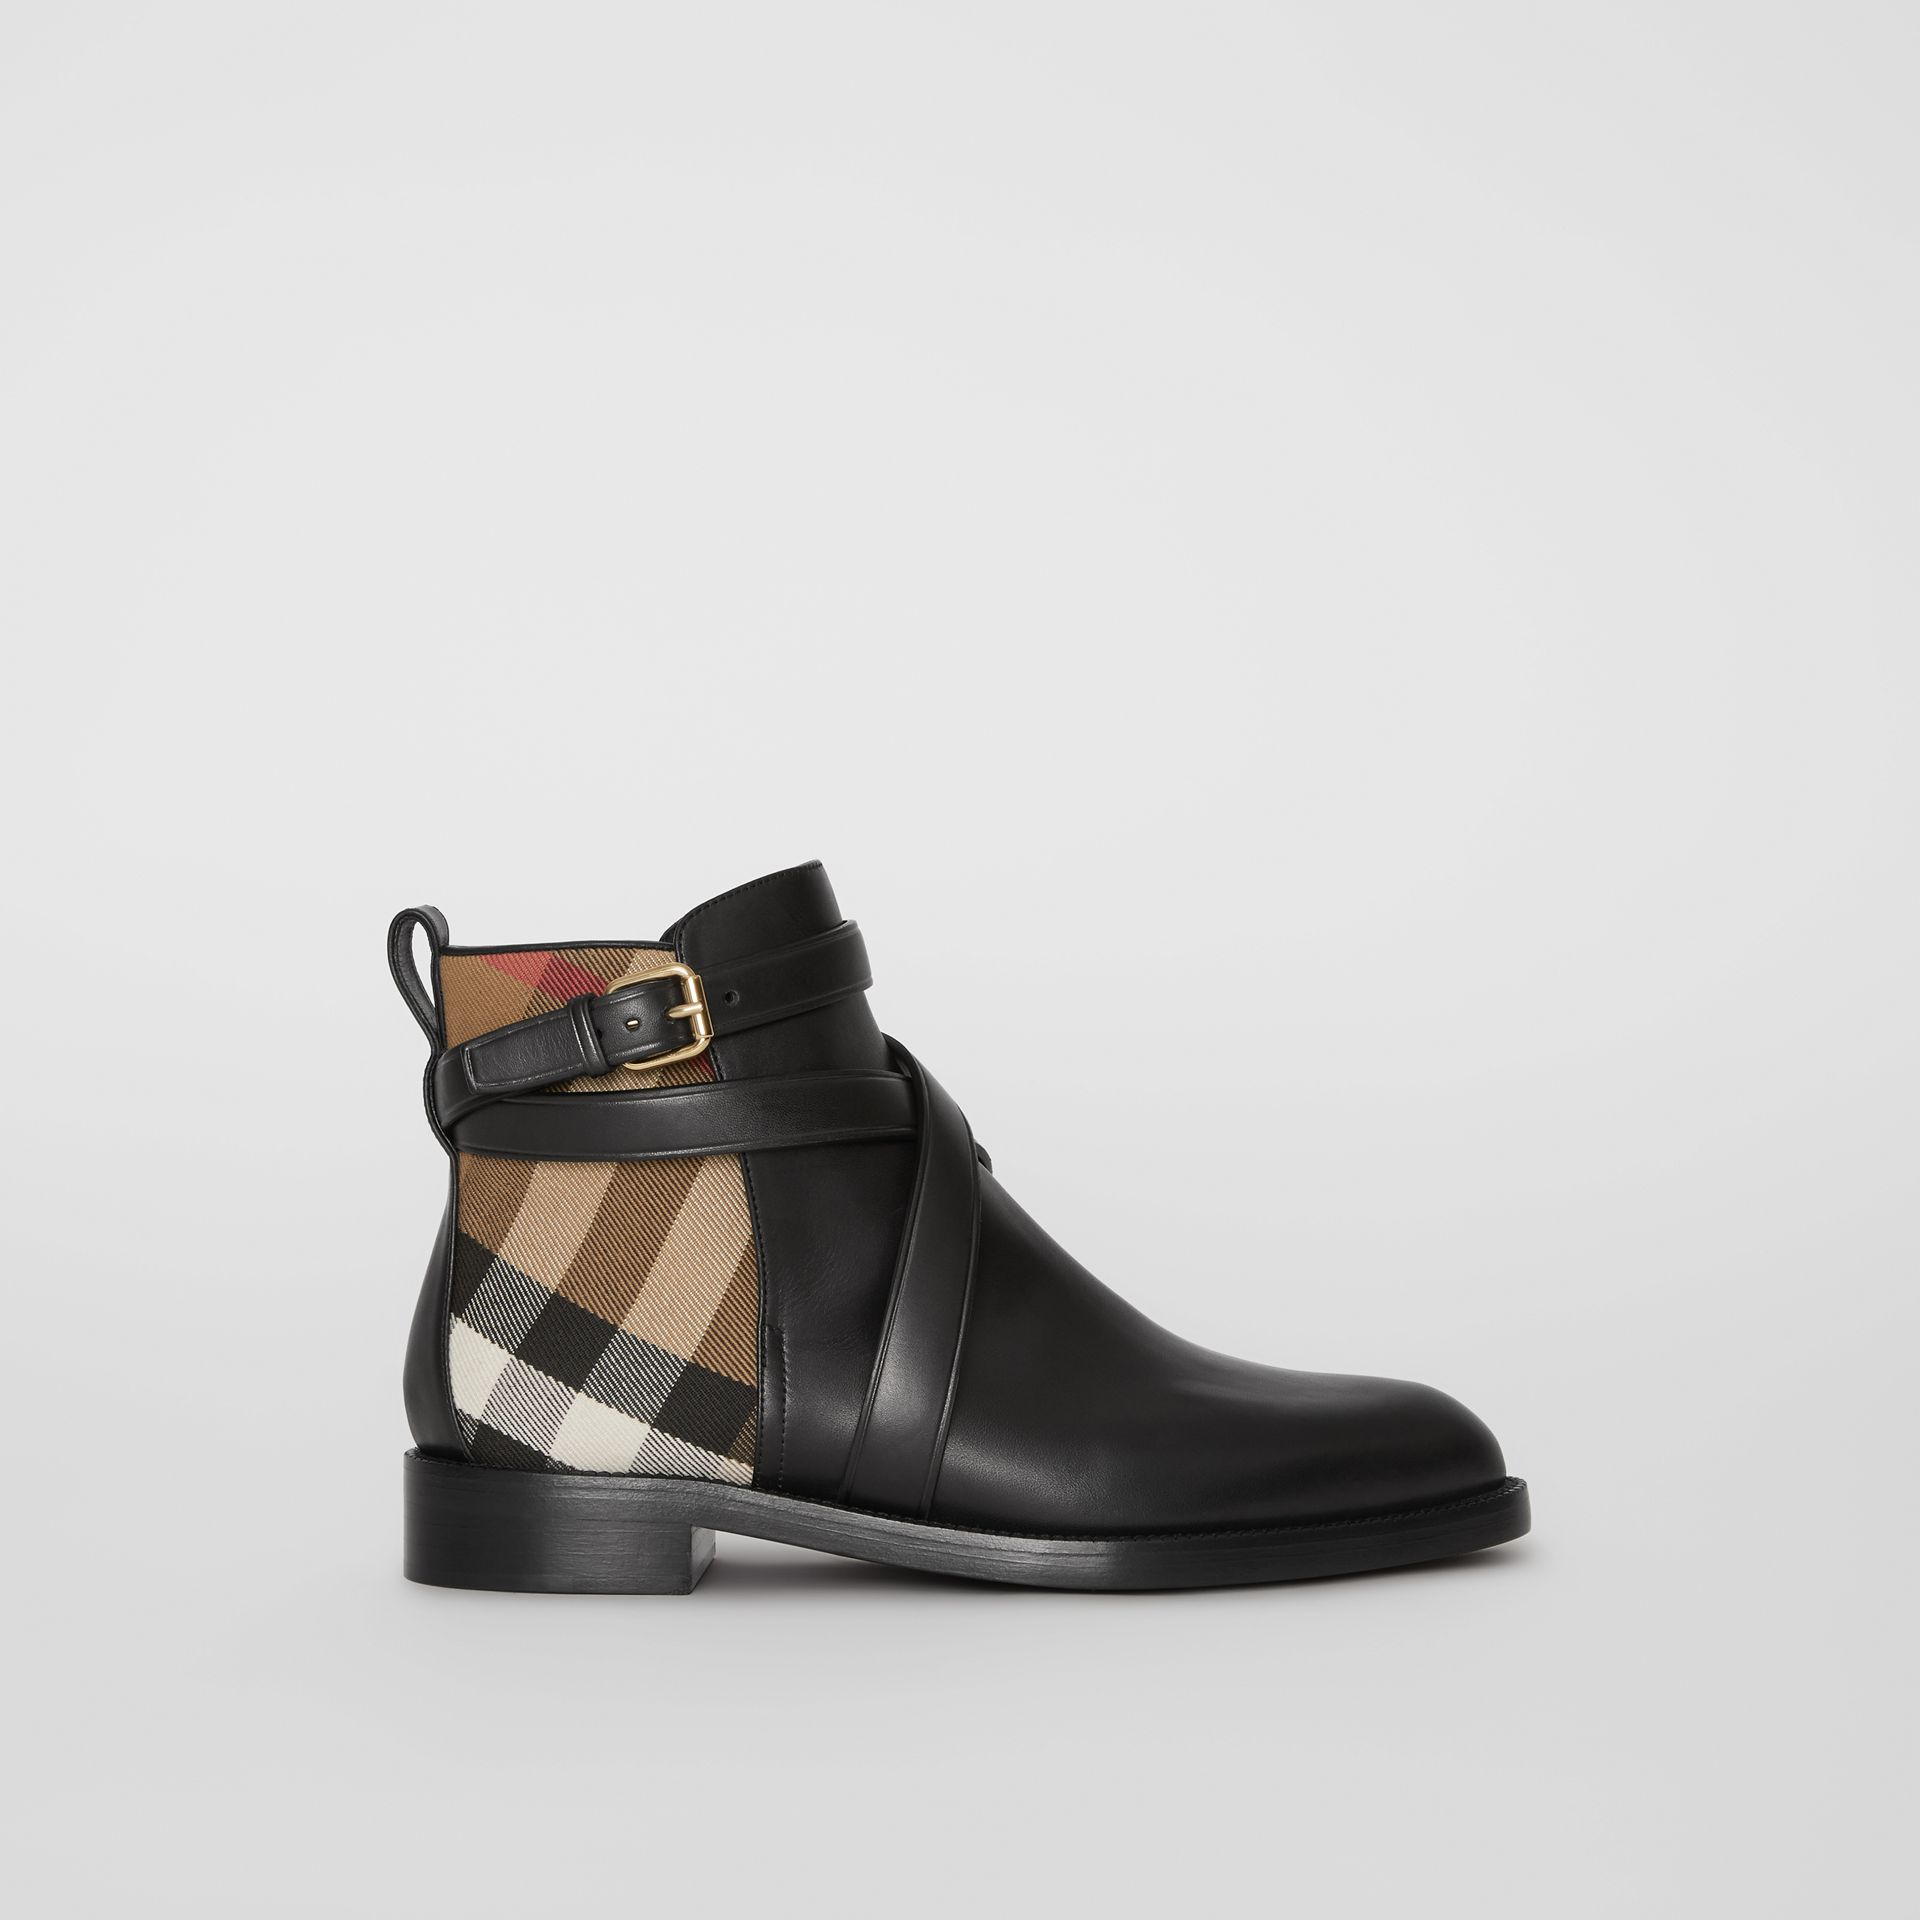 House Check and Leather Ankle Boots in Black - Women | Burberry Australia - gallery image 5